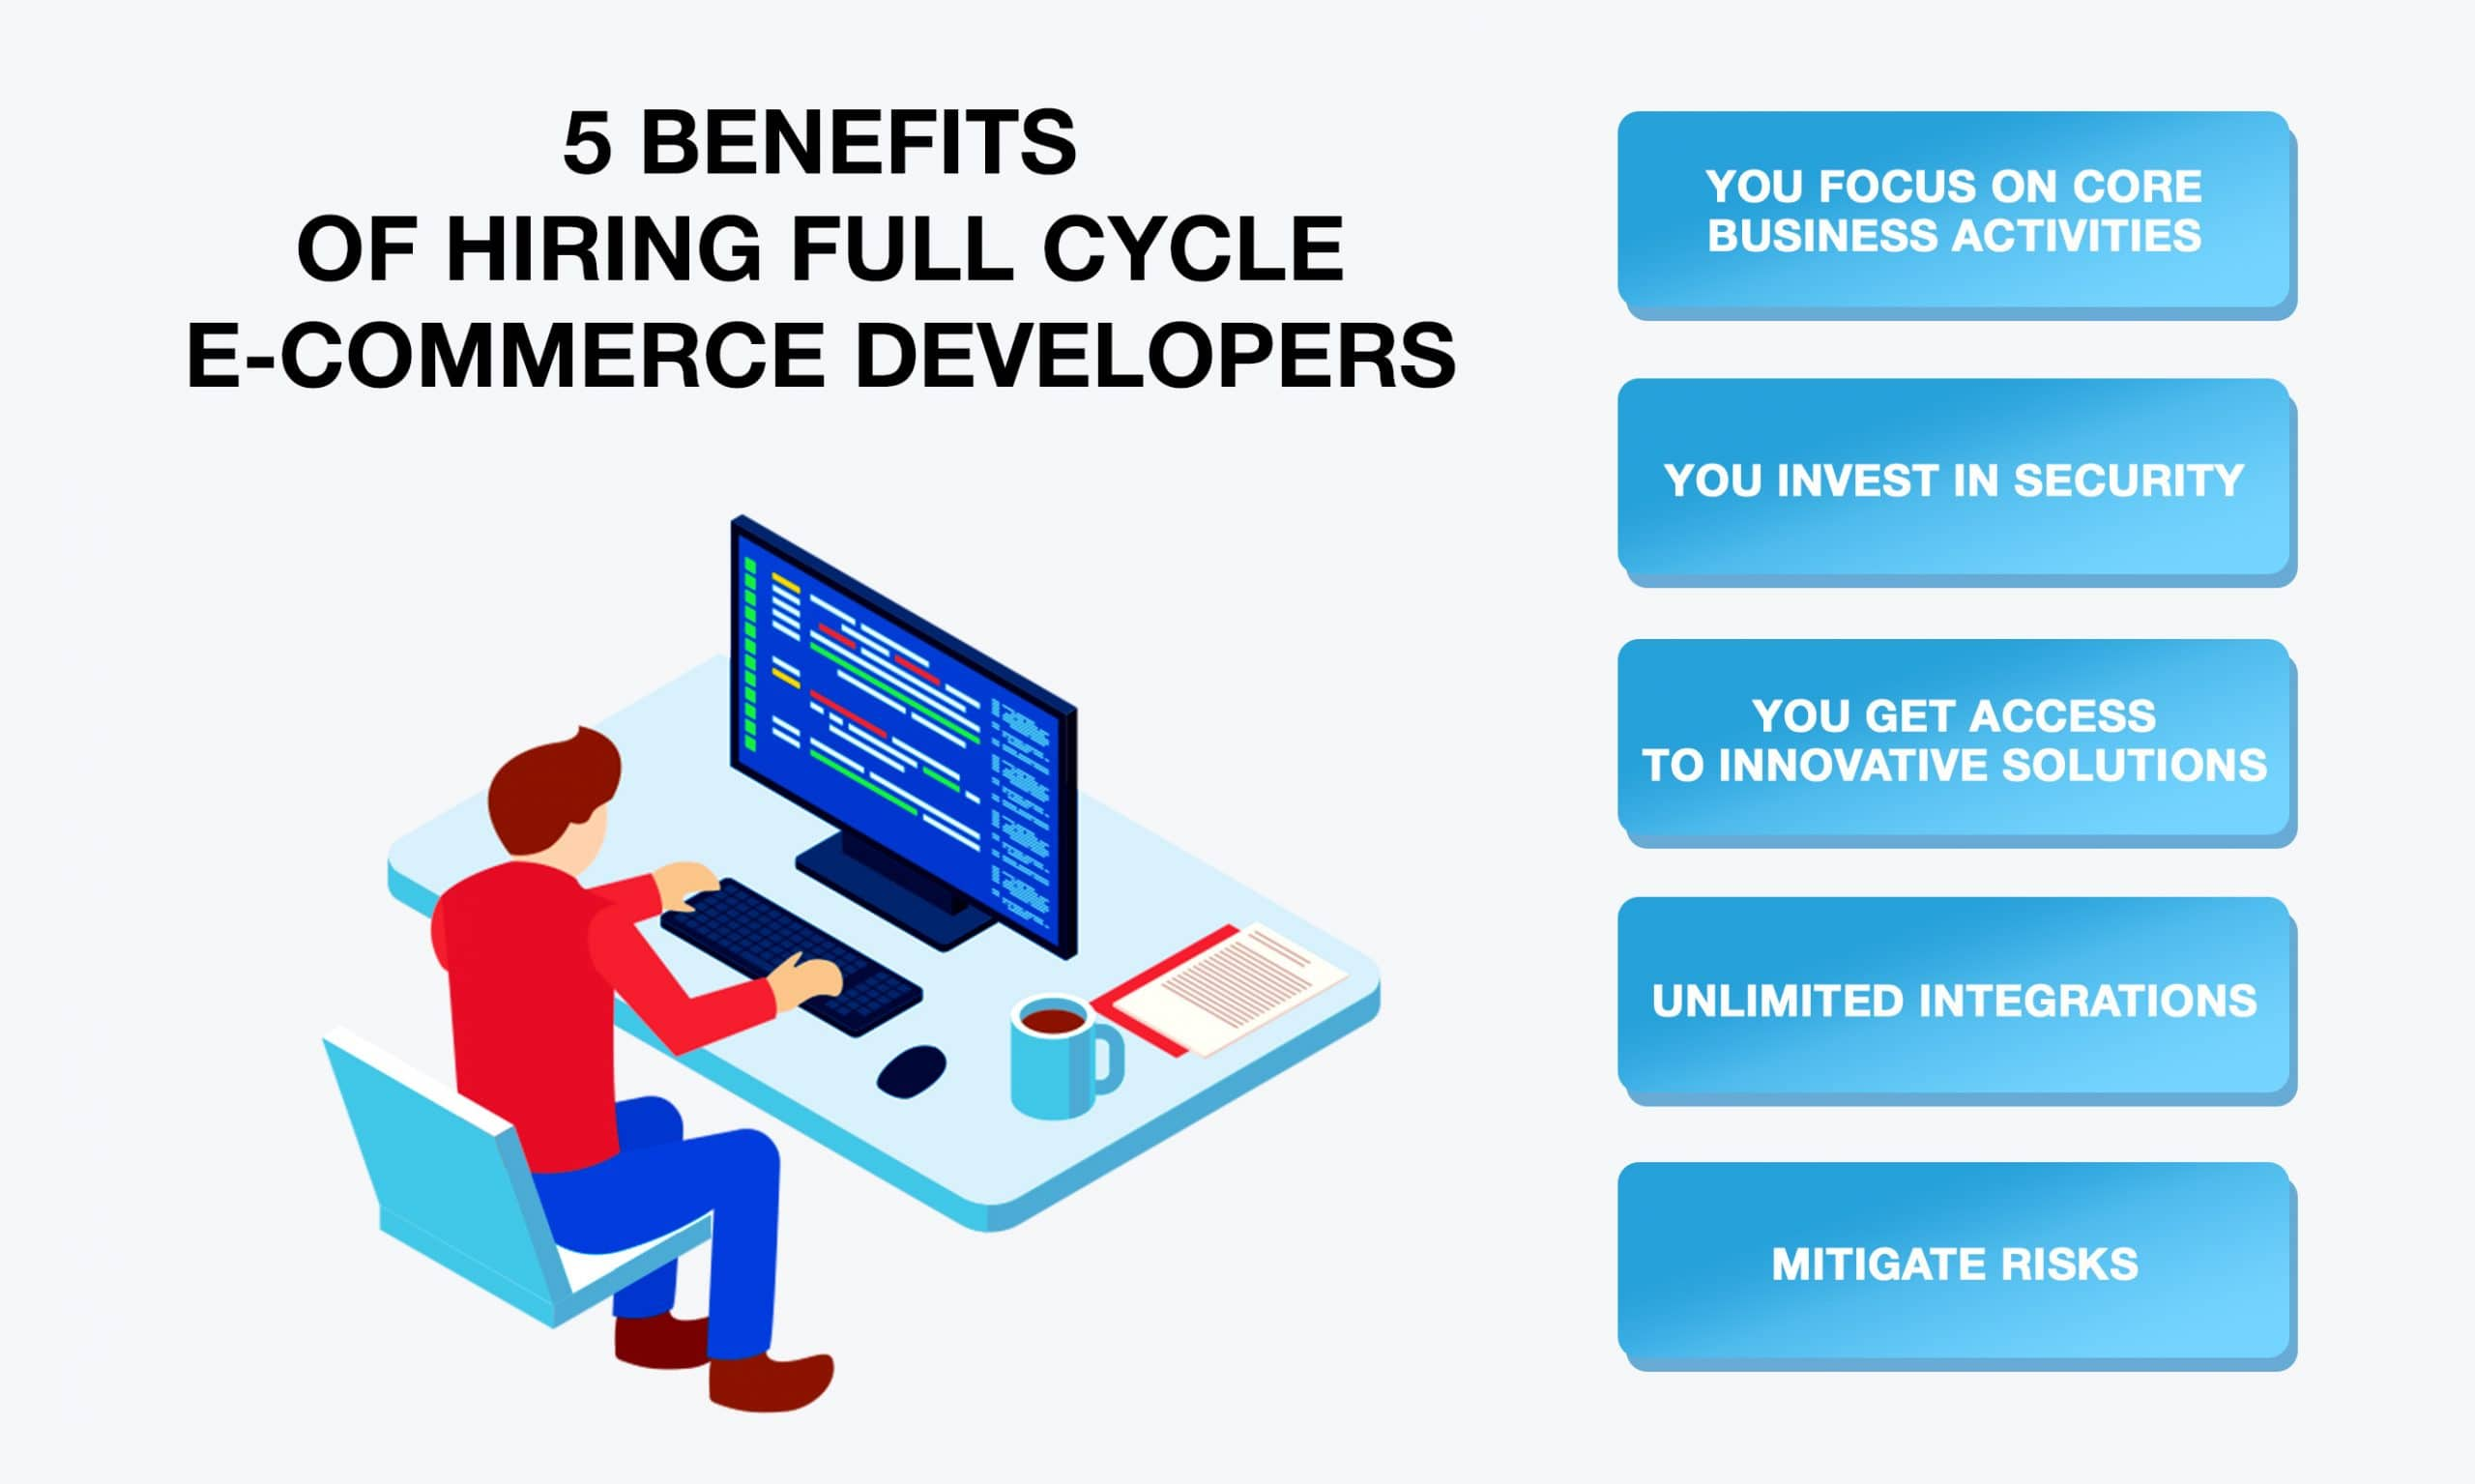 Benefits of Hiring Full Cycle E-commerce Developers